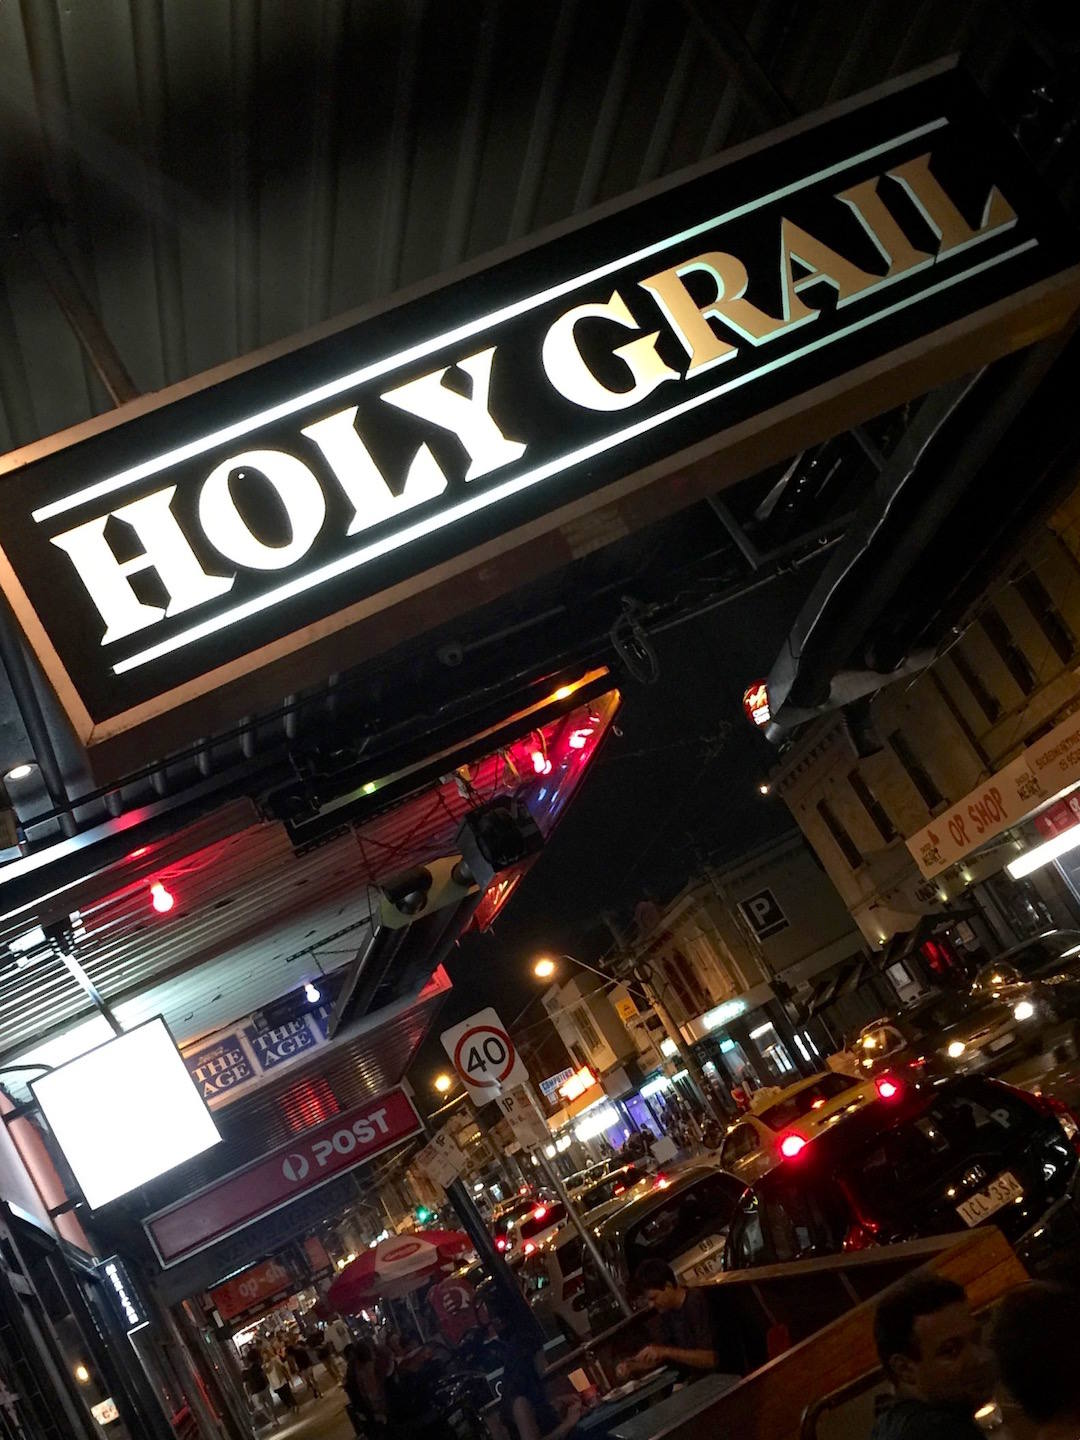 Chapel Street bars, Holy Grail, Chapel Street, Windsor hero